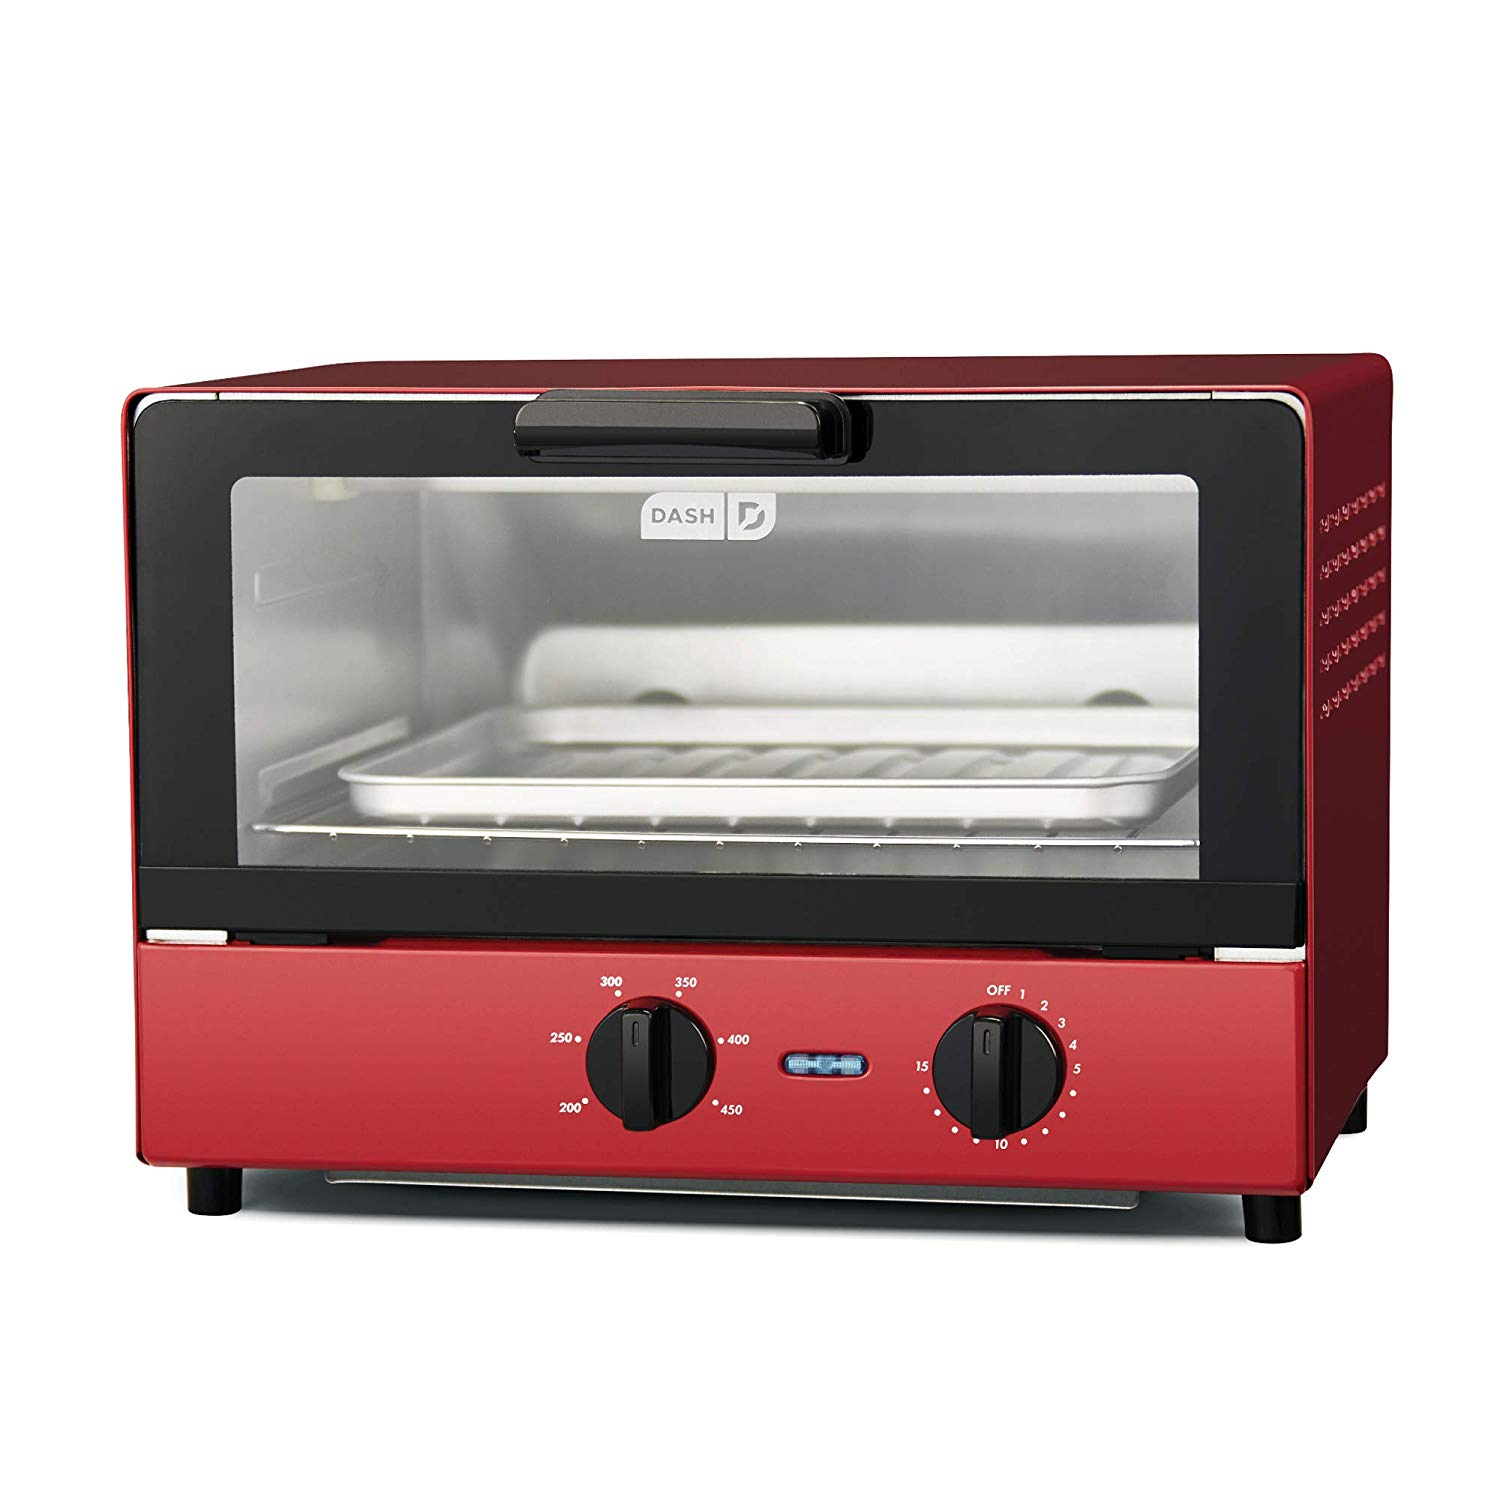 Dash Compact Toaster Oven Cooker for Bread, Bagels, Cookies, Pizza, Paninis & More with Baking Tray, Rack + Auto Shut Off Feature – Red